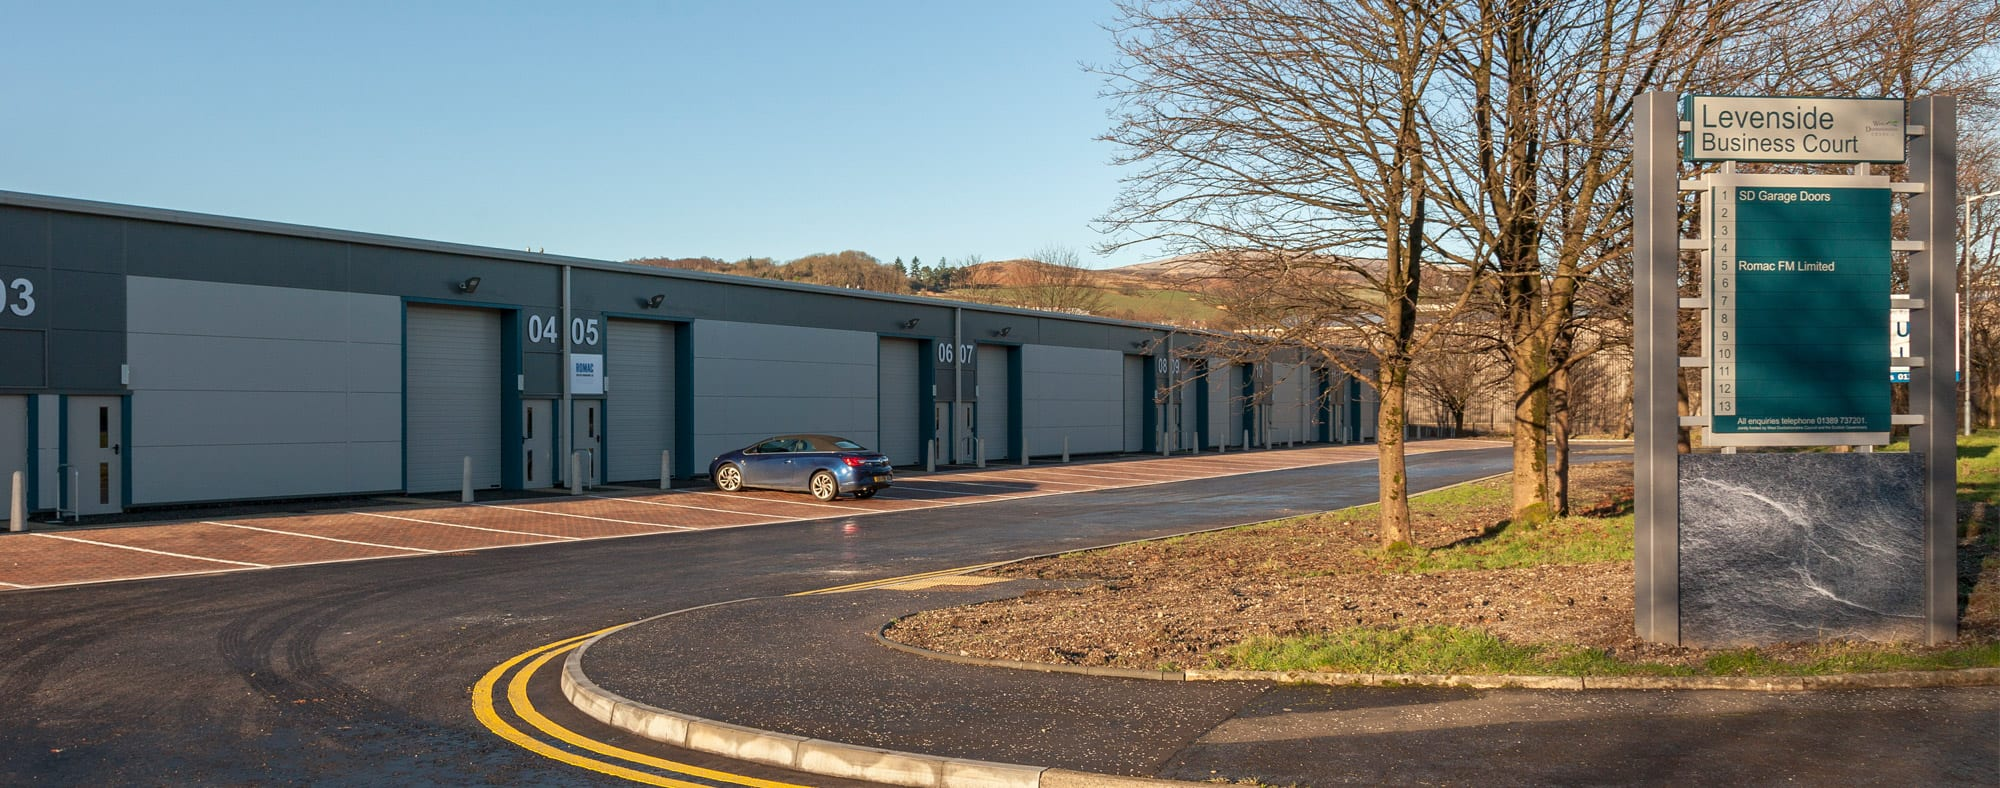 VALE OF LEVEN BUSINESS PARK